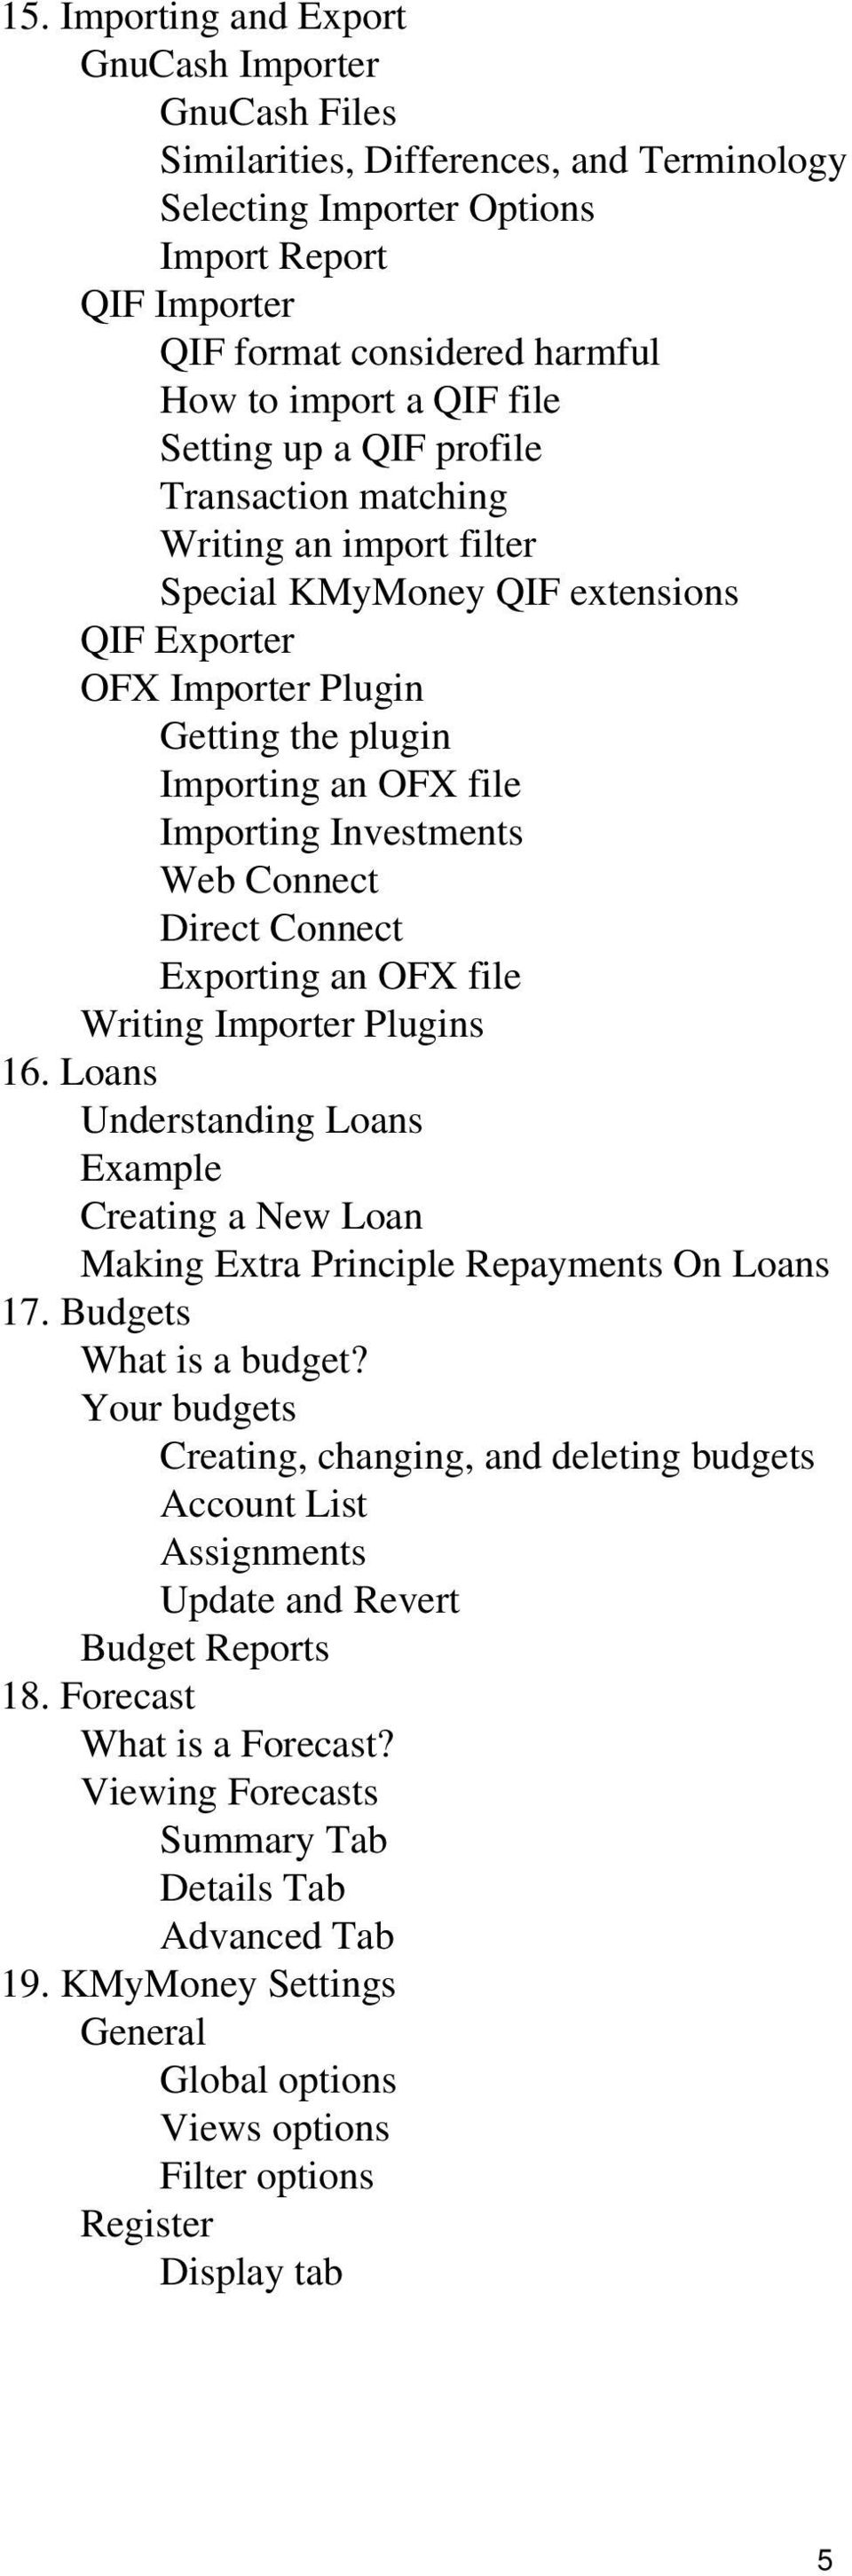 Investments Web Connect Direct Connect Exporting an OFX file Writing Importer Plugins 16. Loans Understanding Loans Example Creating a New Loan Making Extra Principle Repayments On Loans 17.